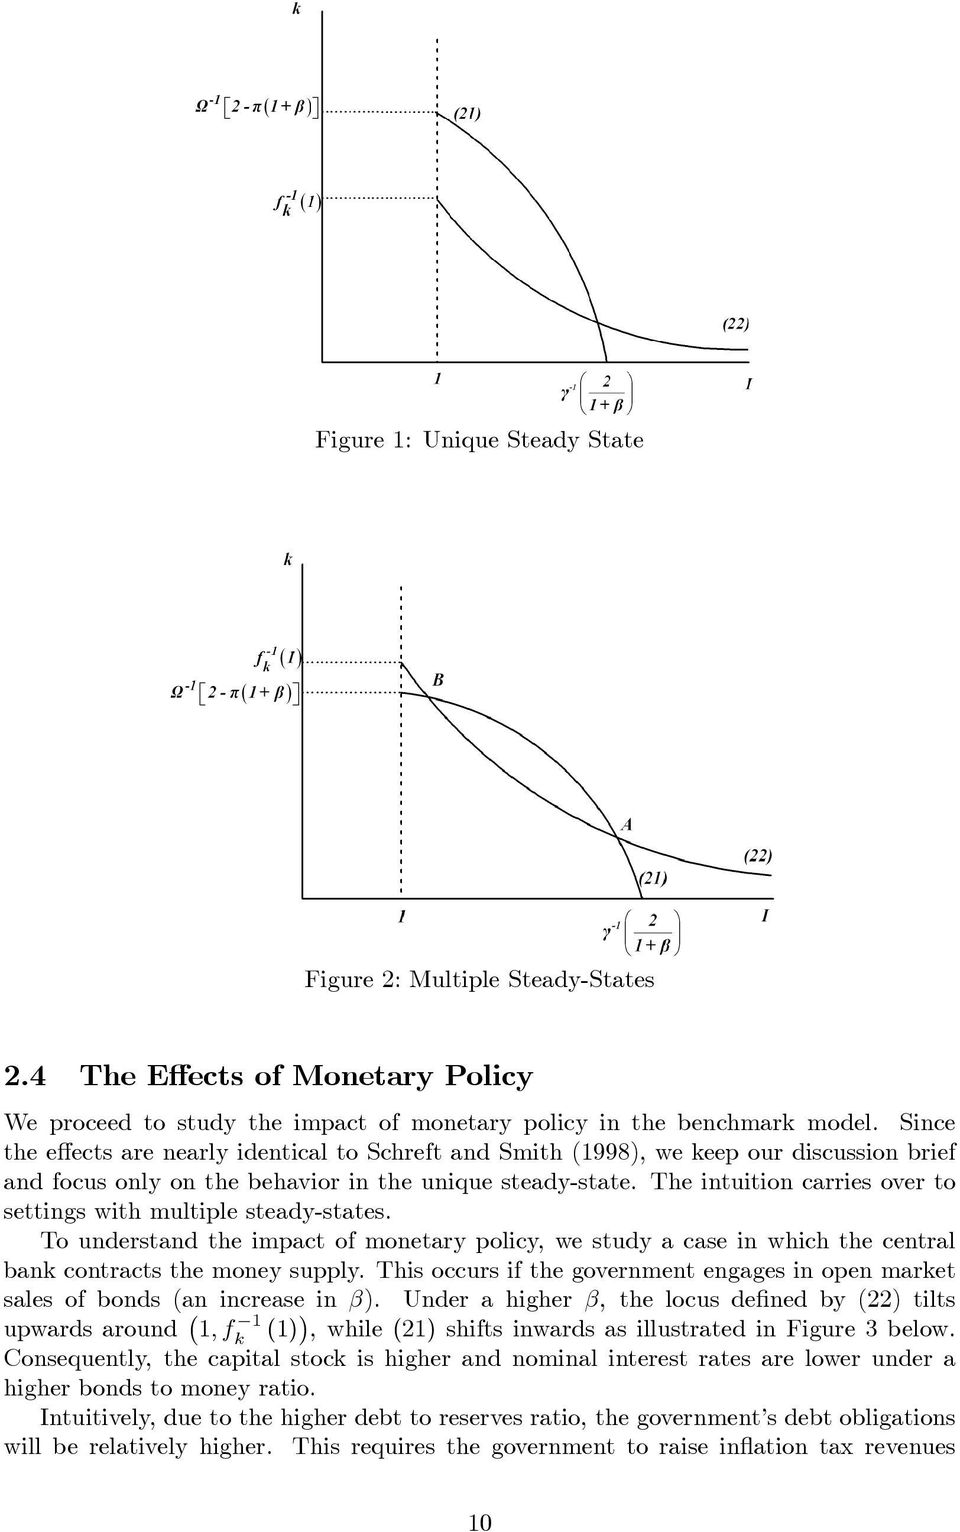 The intuition carries over to settings with multiple steady-states. To understand the impact of monetary policy, we study a case in which the central bank contracts the money supply.